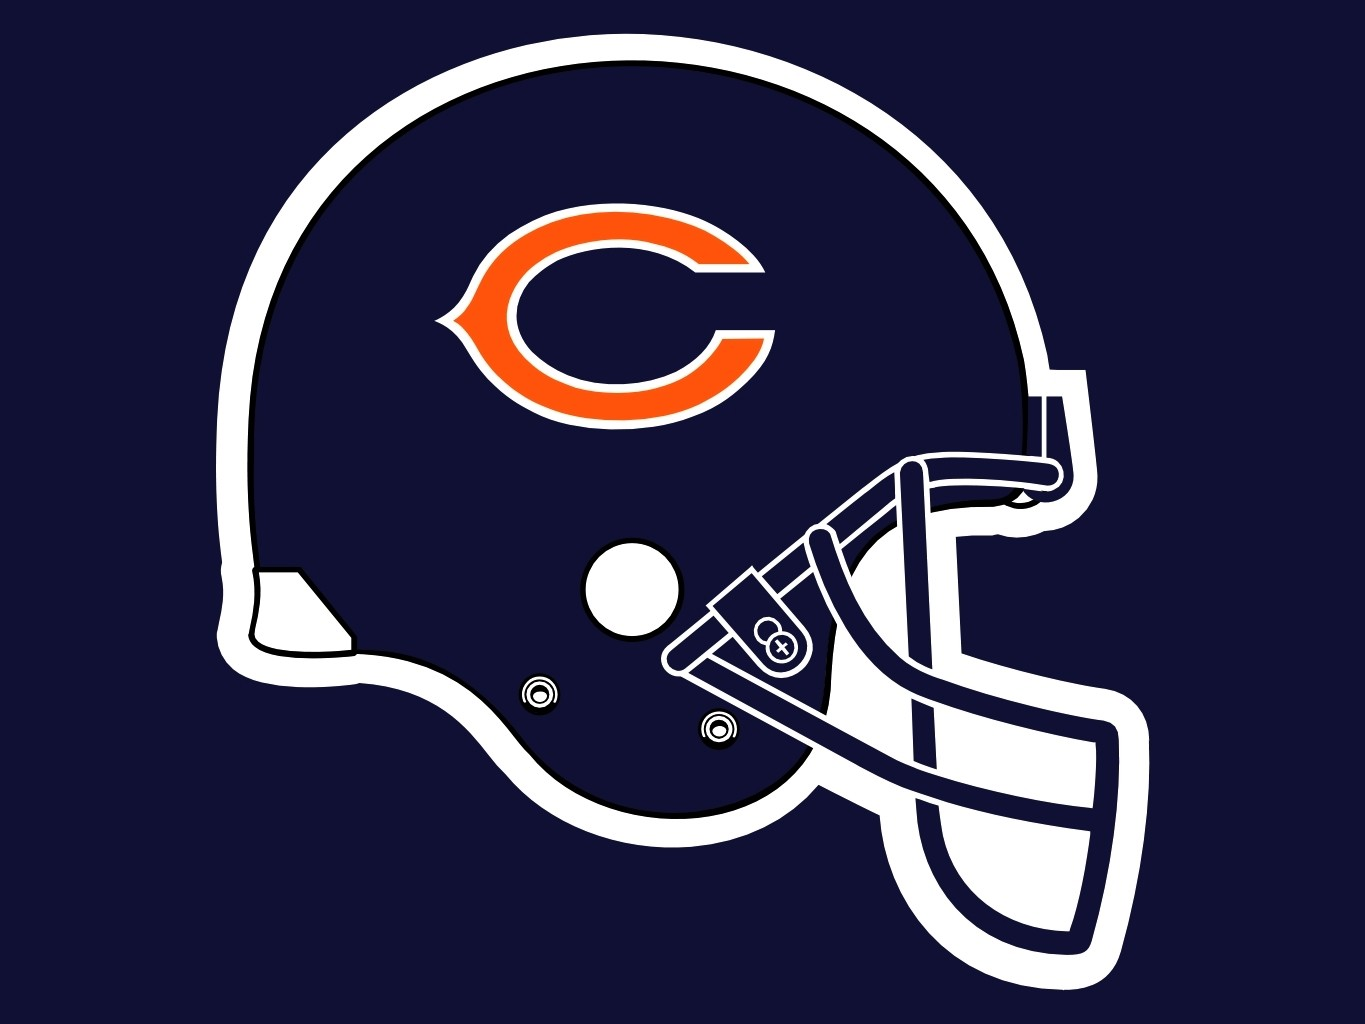 Chicago Bears Helmet Drawing At Getdrawings Com Free For